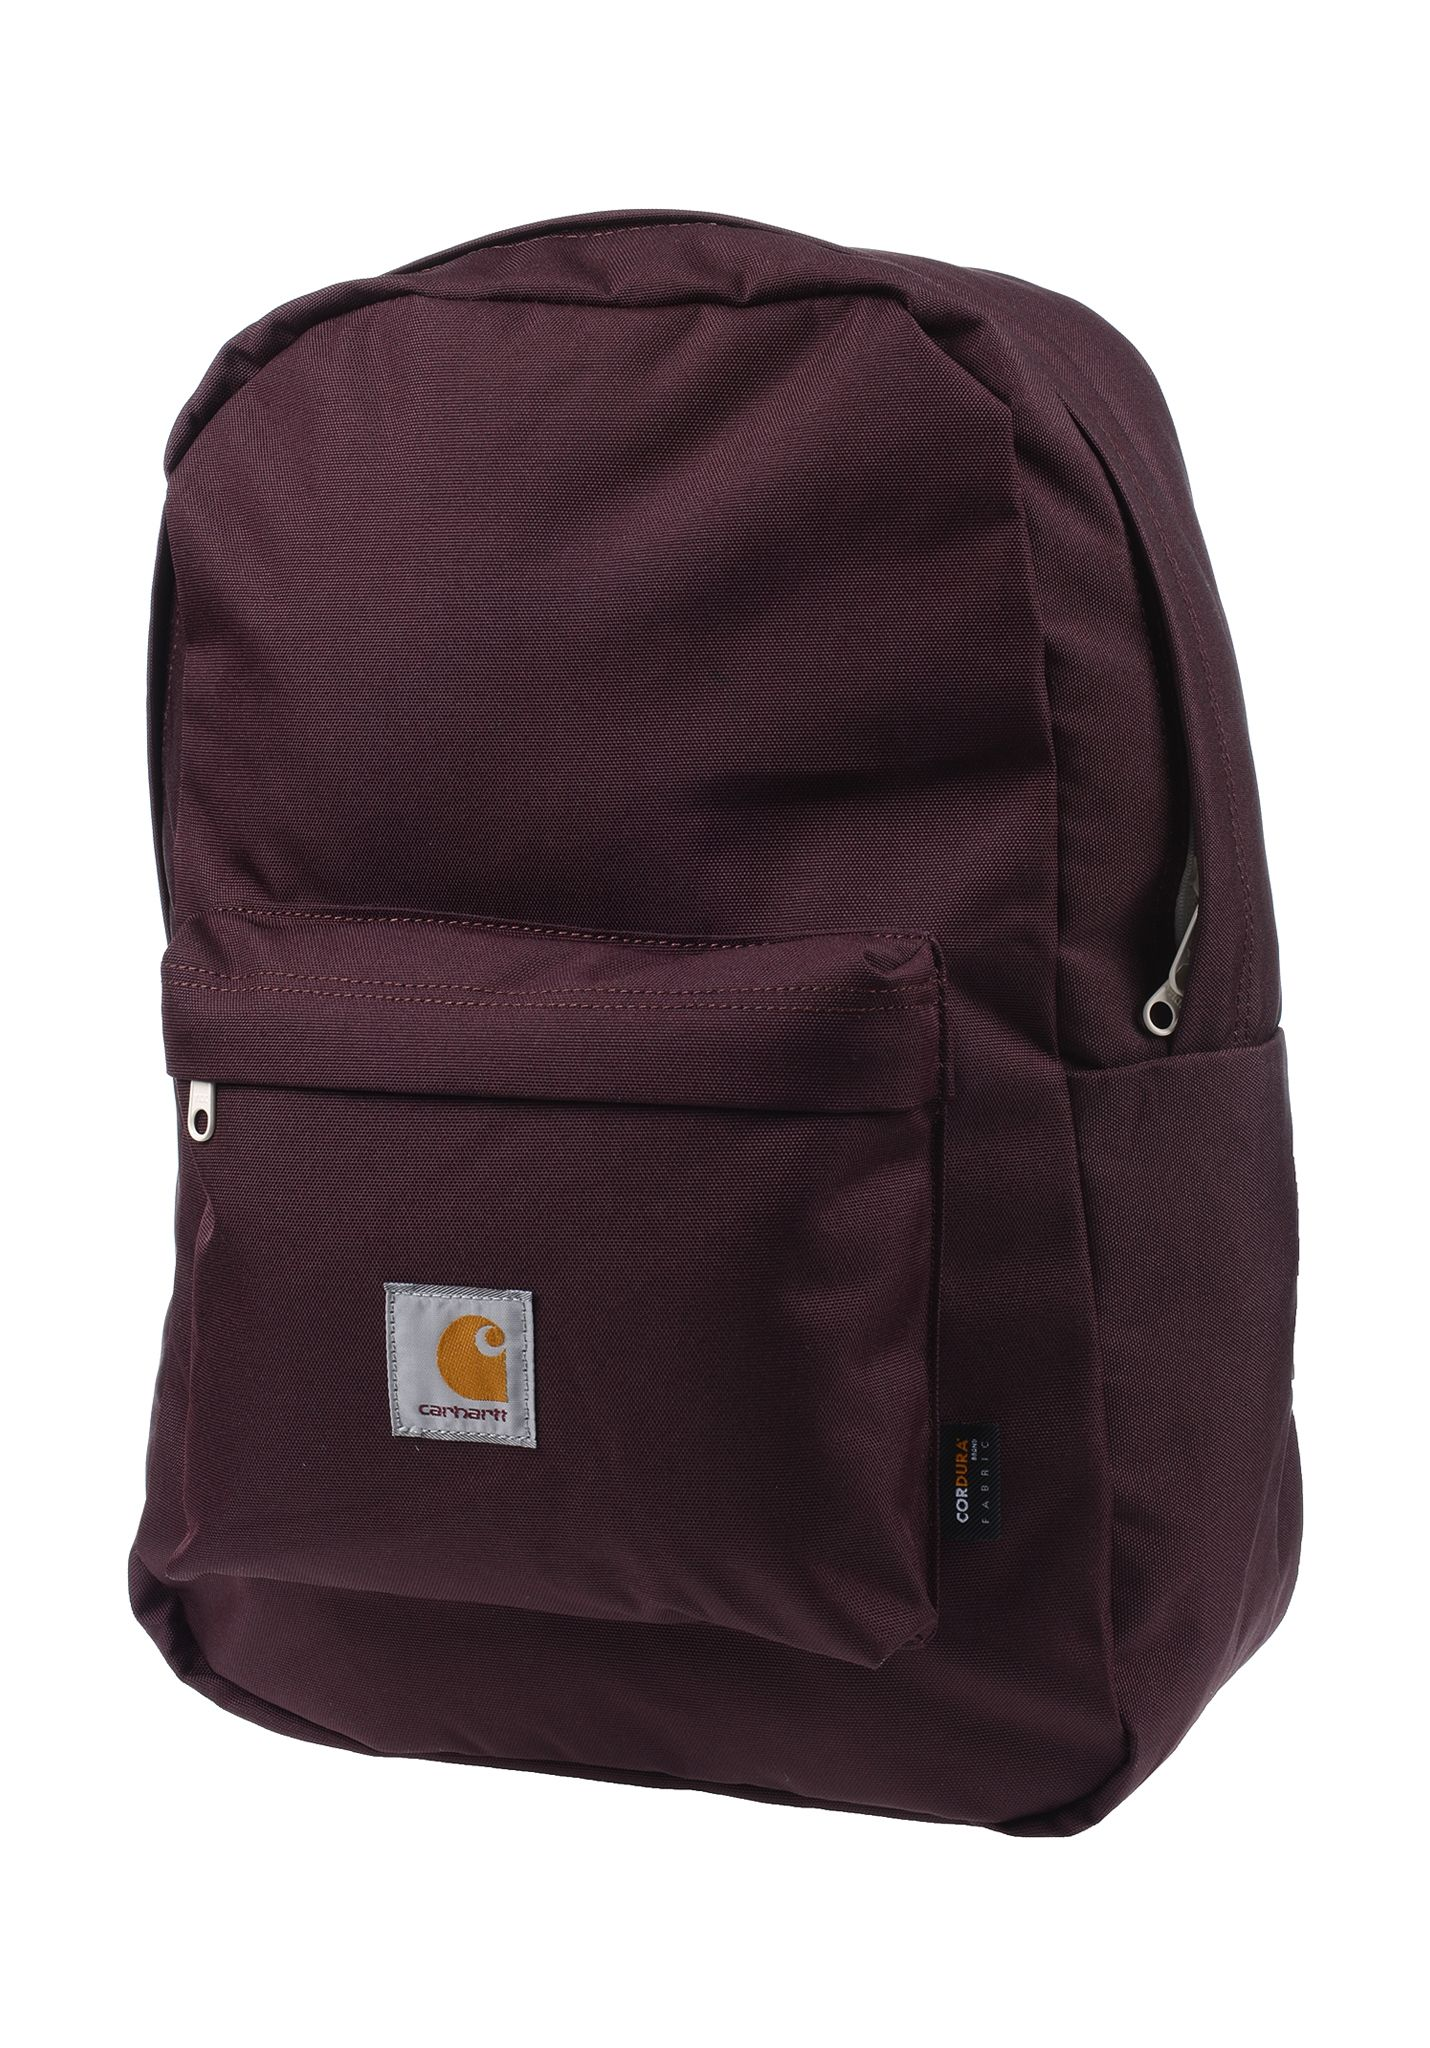 carhartt WIP Watch - Backpack - Red - Planet Sports